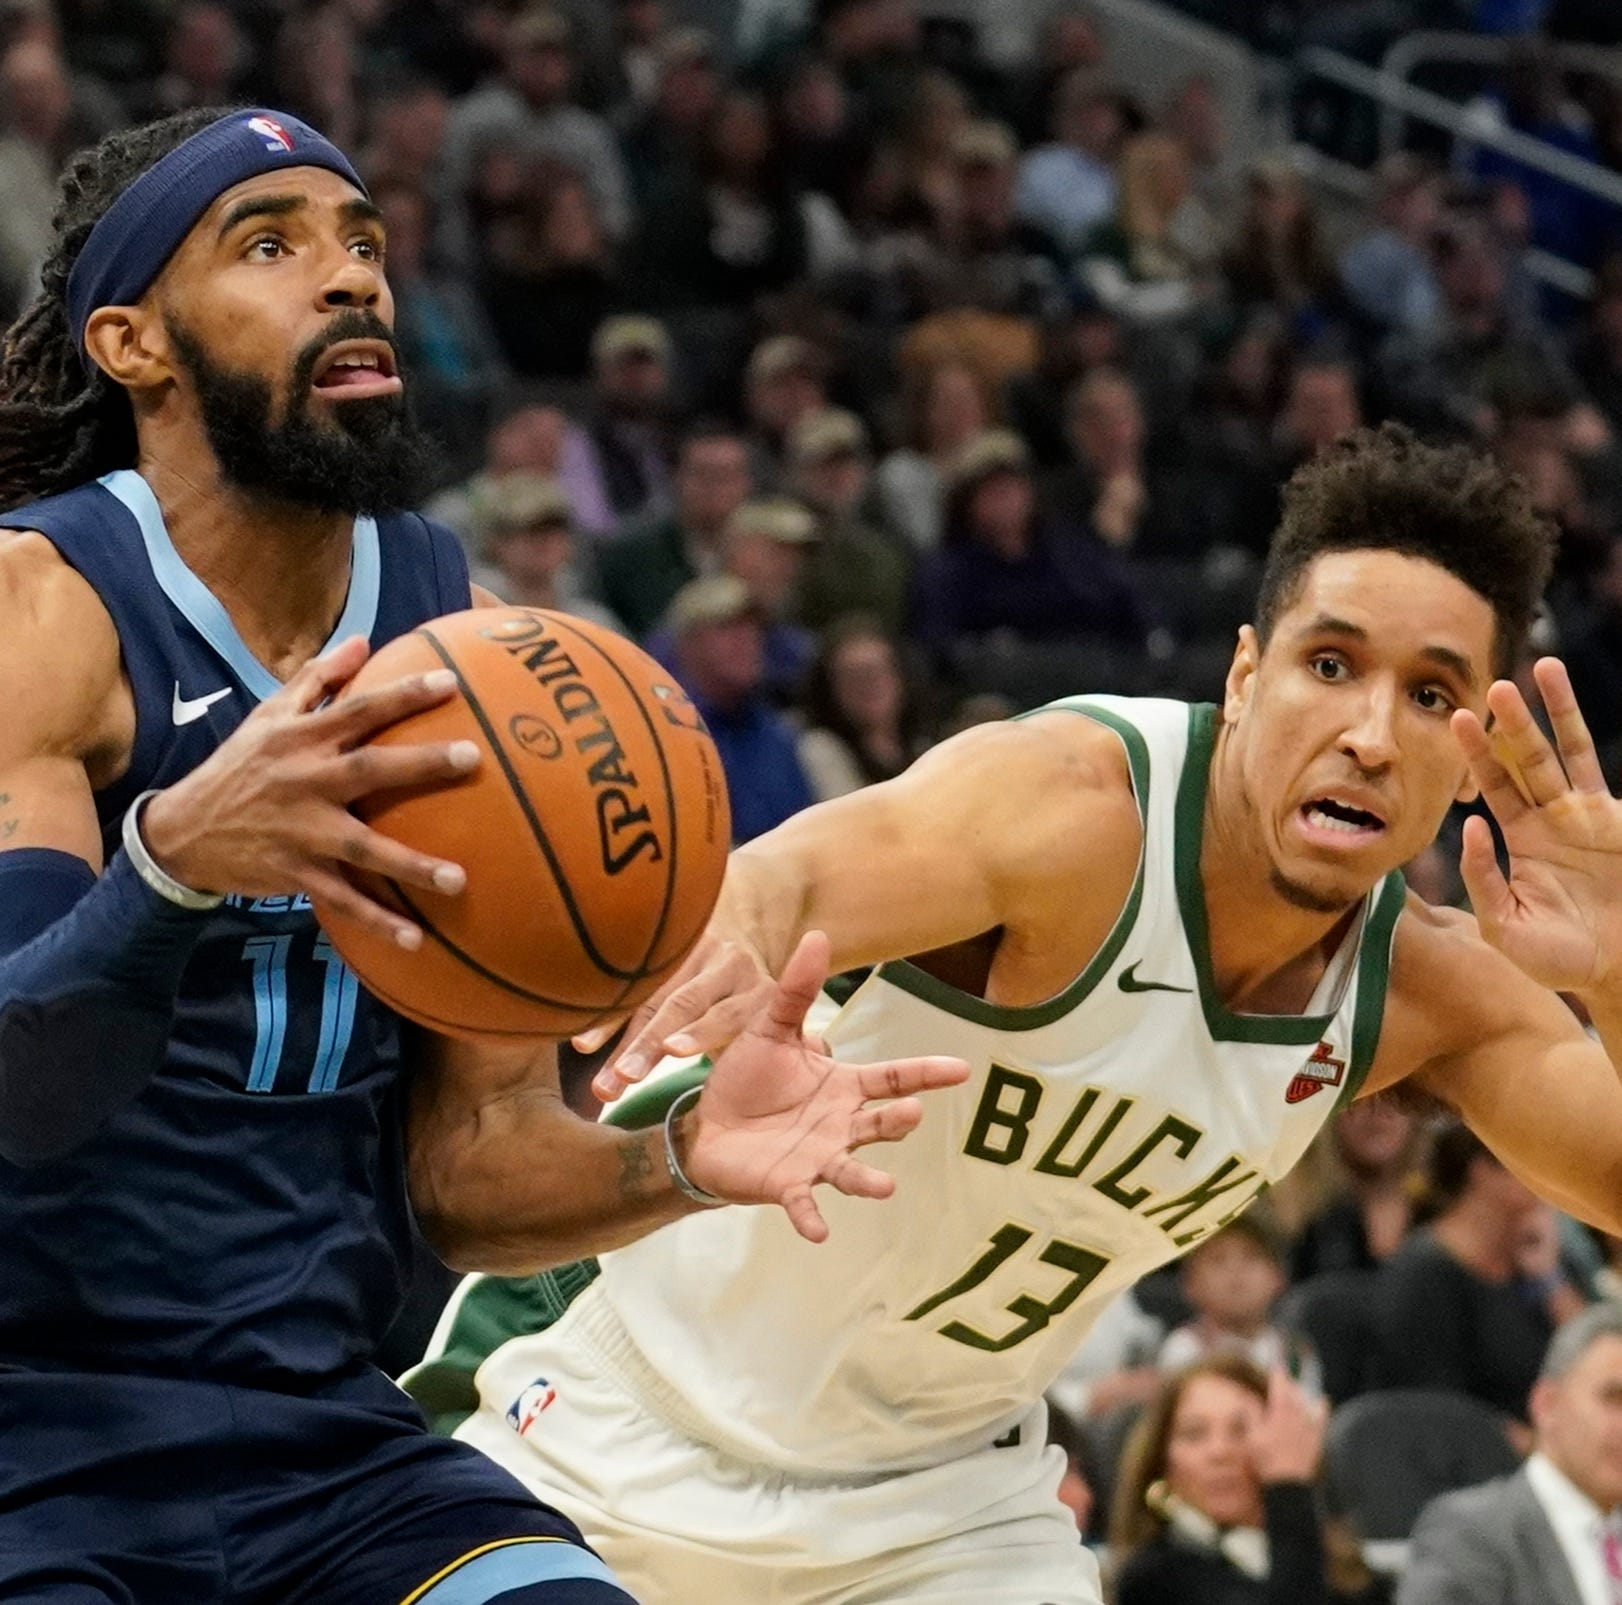 Grizzlies withstand second-half run to top Bucks on the road: Wednesday's recap